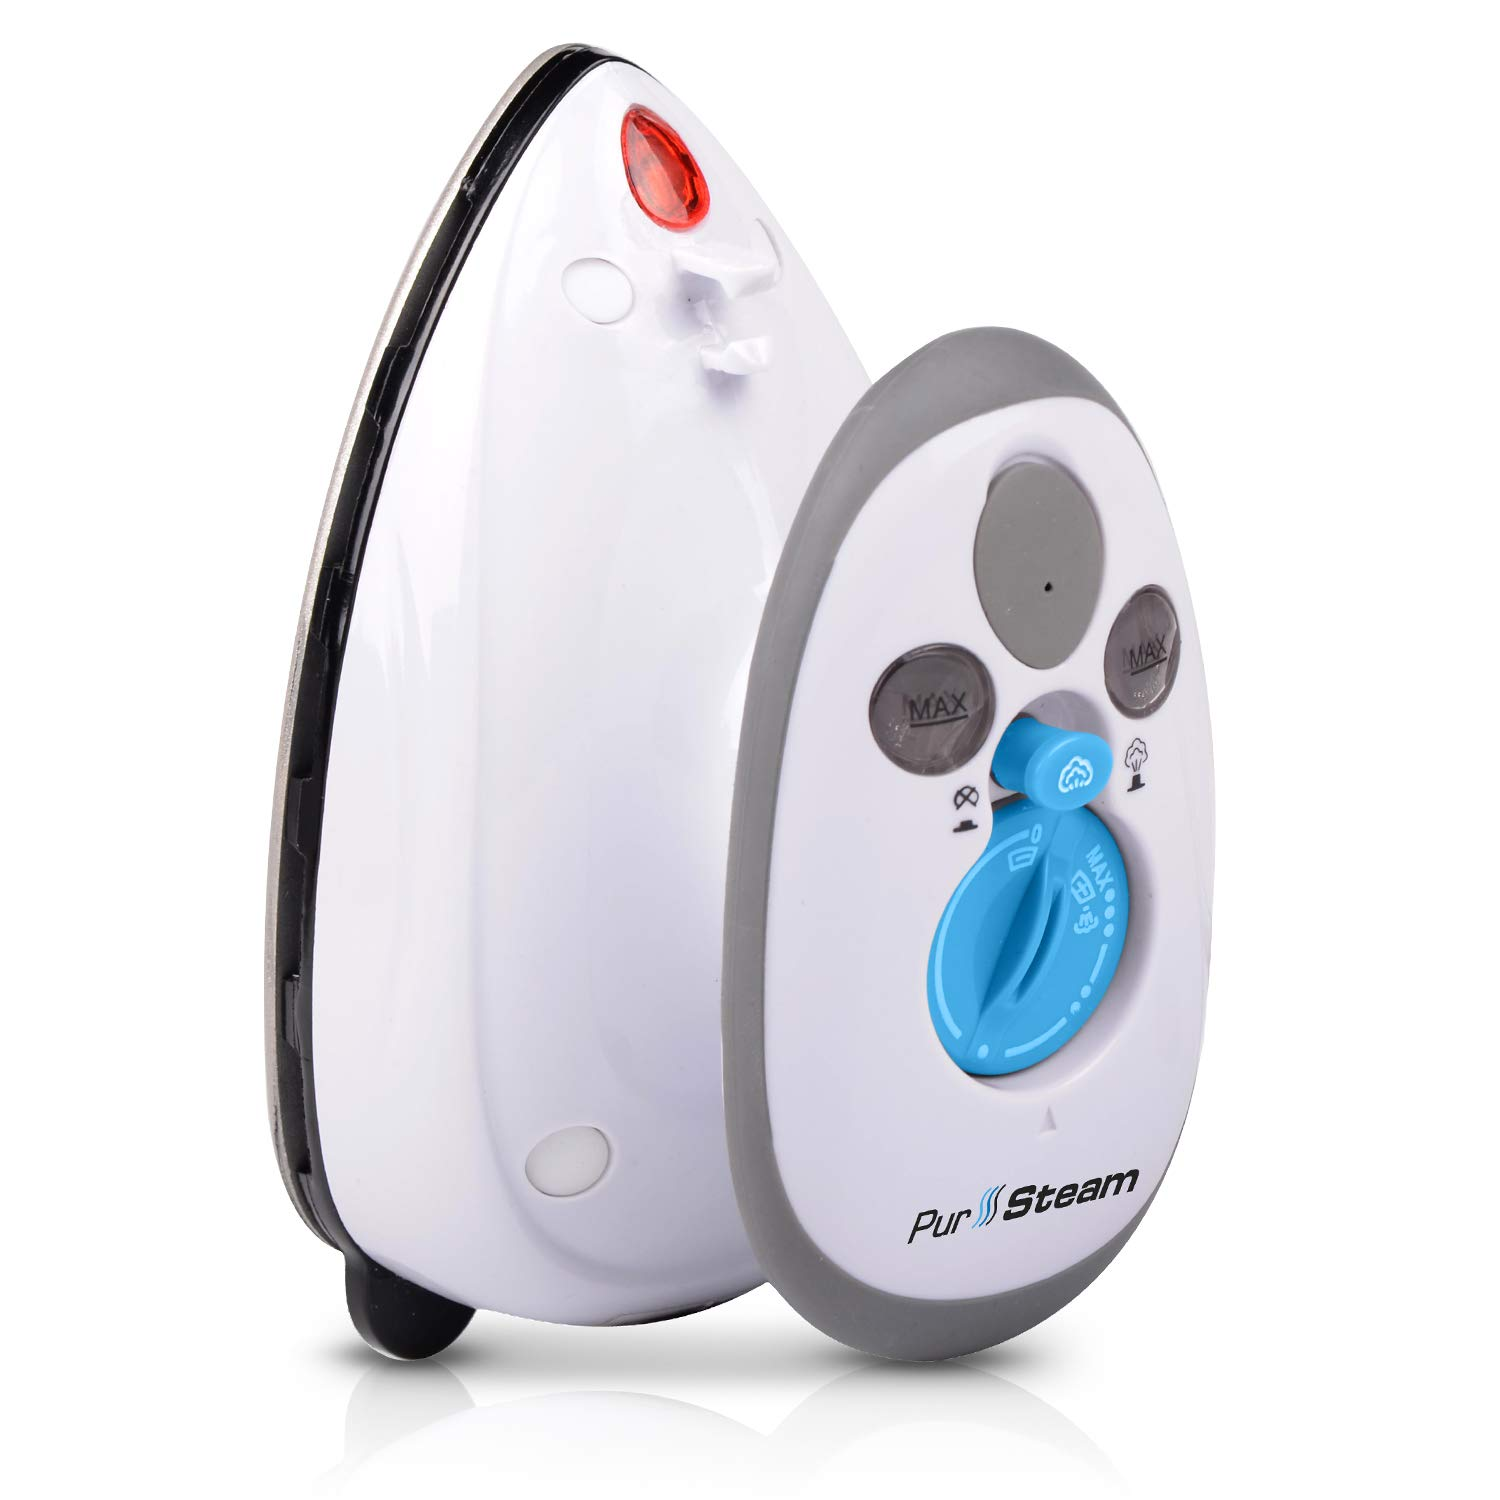 Travel Steamer Iron Mini - Dual Voltage 420W Power Lightweight Best for Travel and Quilting Iron with Anti Slip Handle and Non Stick Soleplate by PurSteam